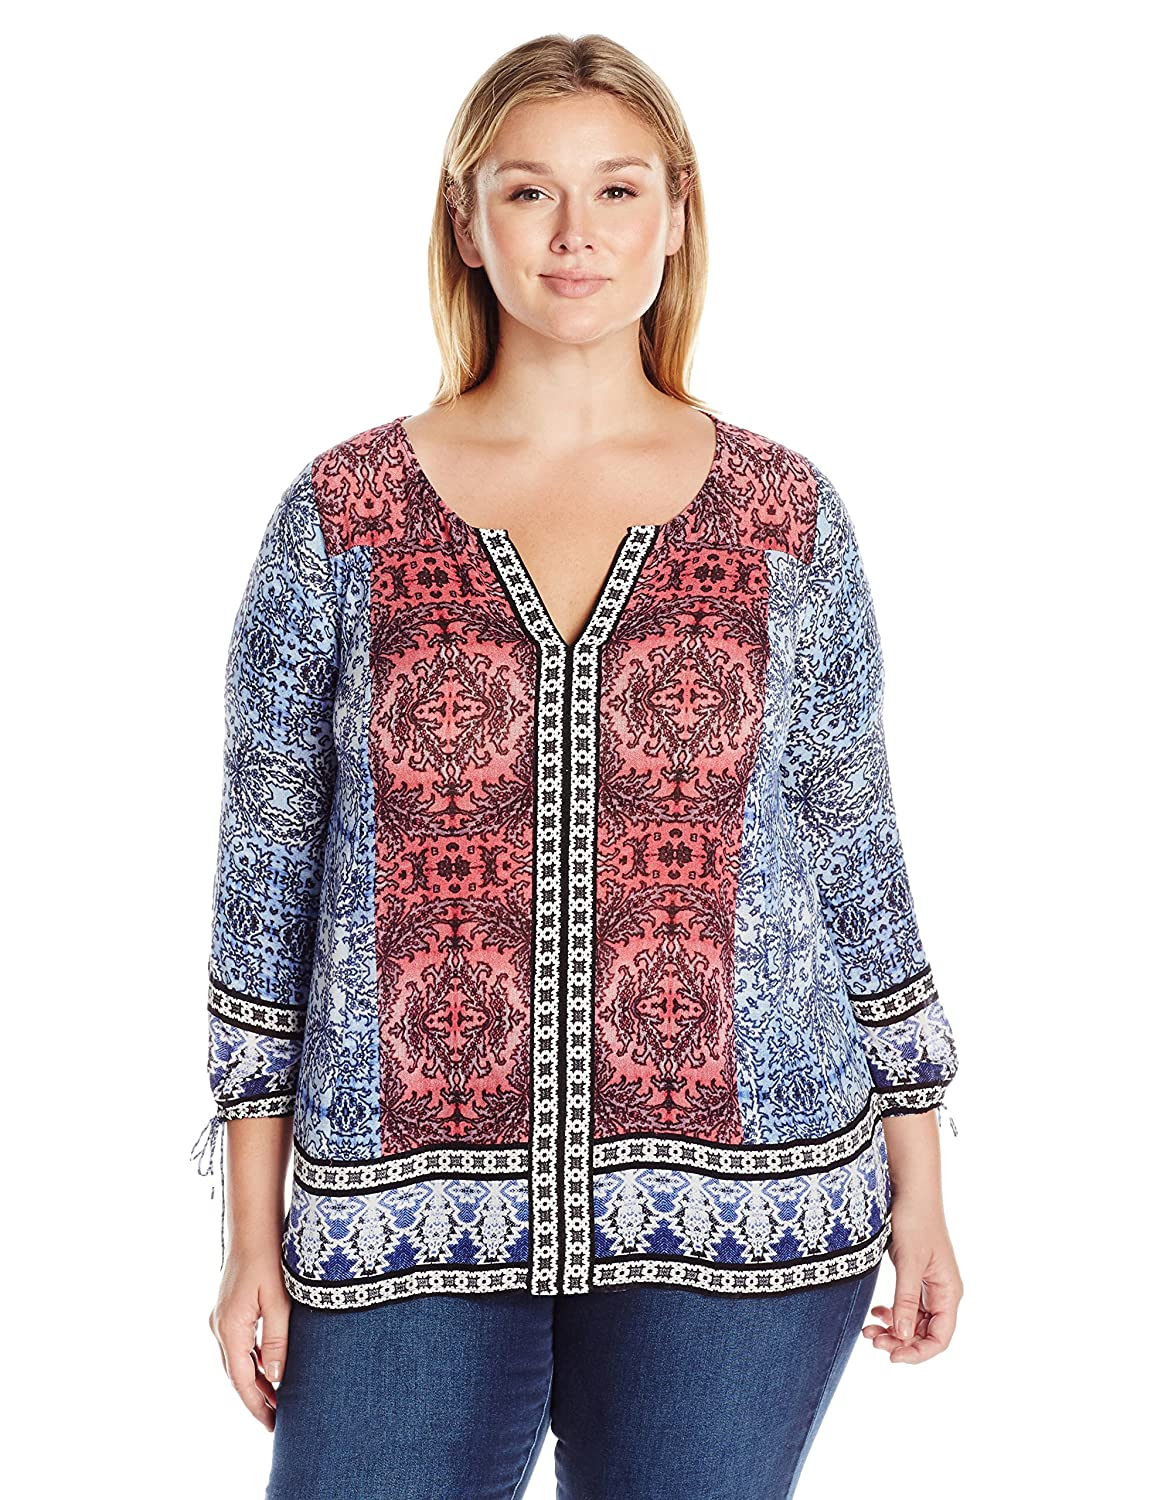 Lucky Brand Women's Plus Size Long Sleeve Top with Border Print